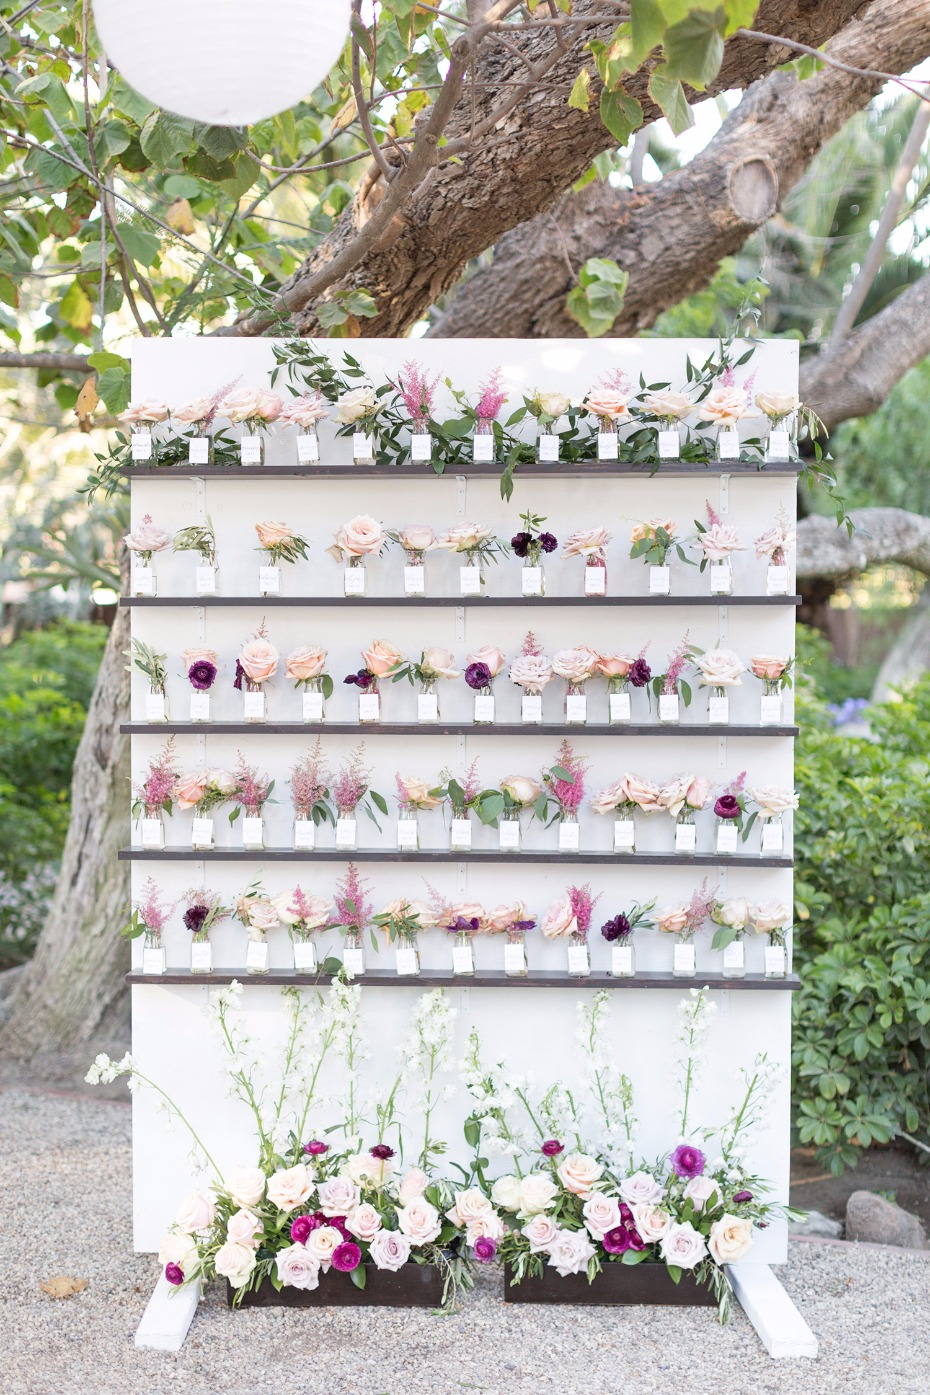 Flower seating chart idea!